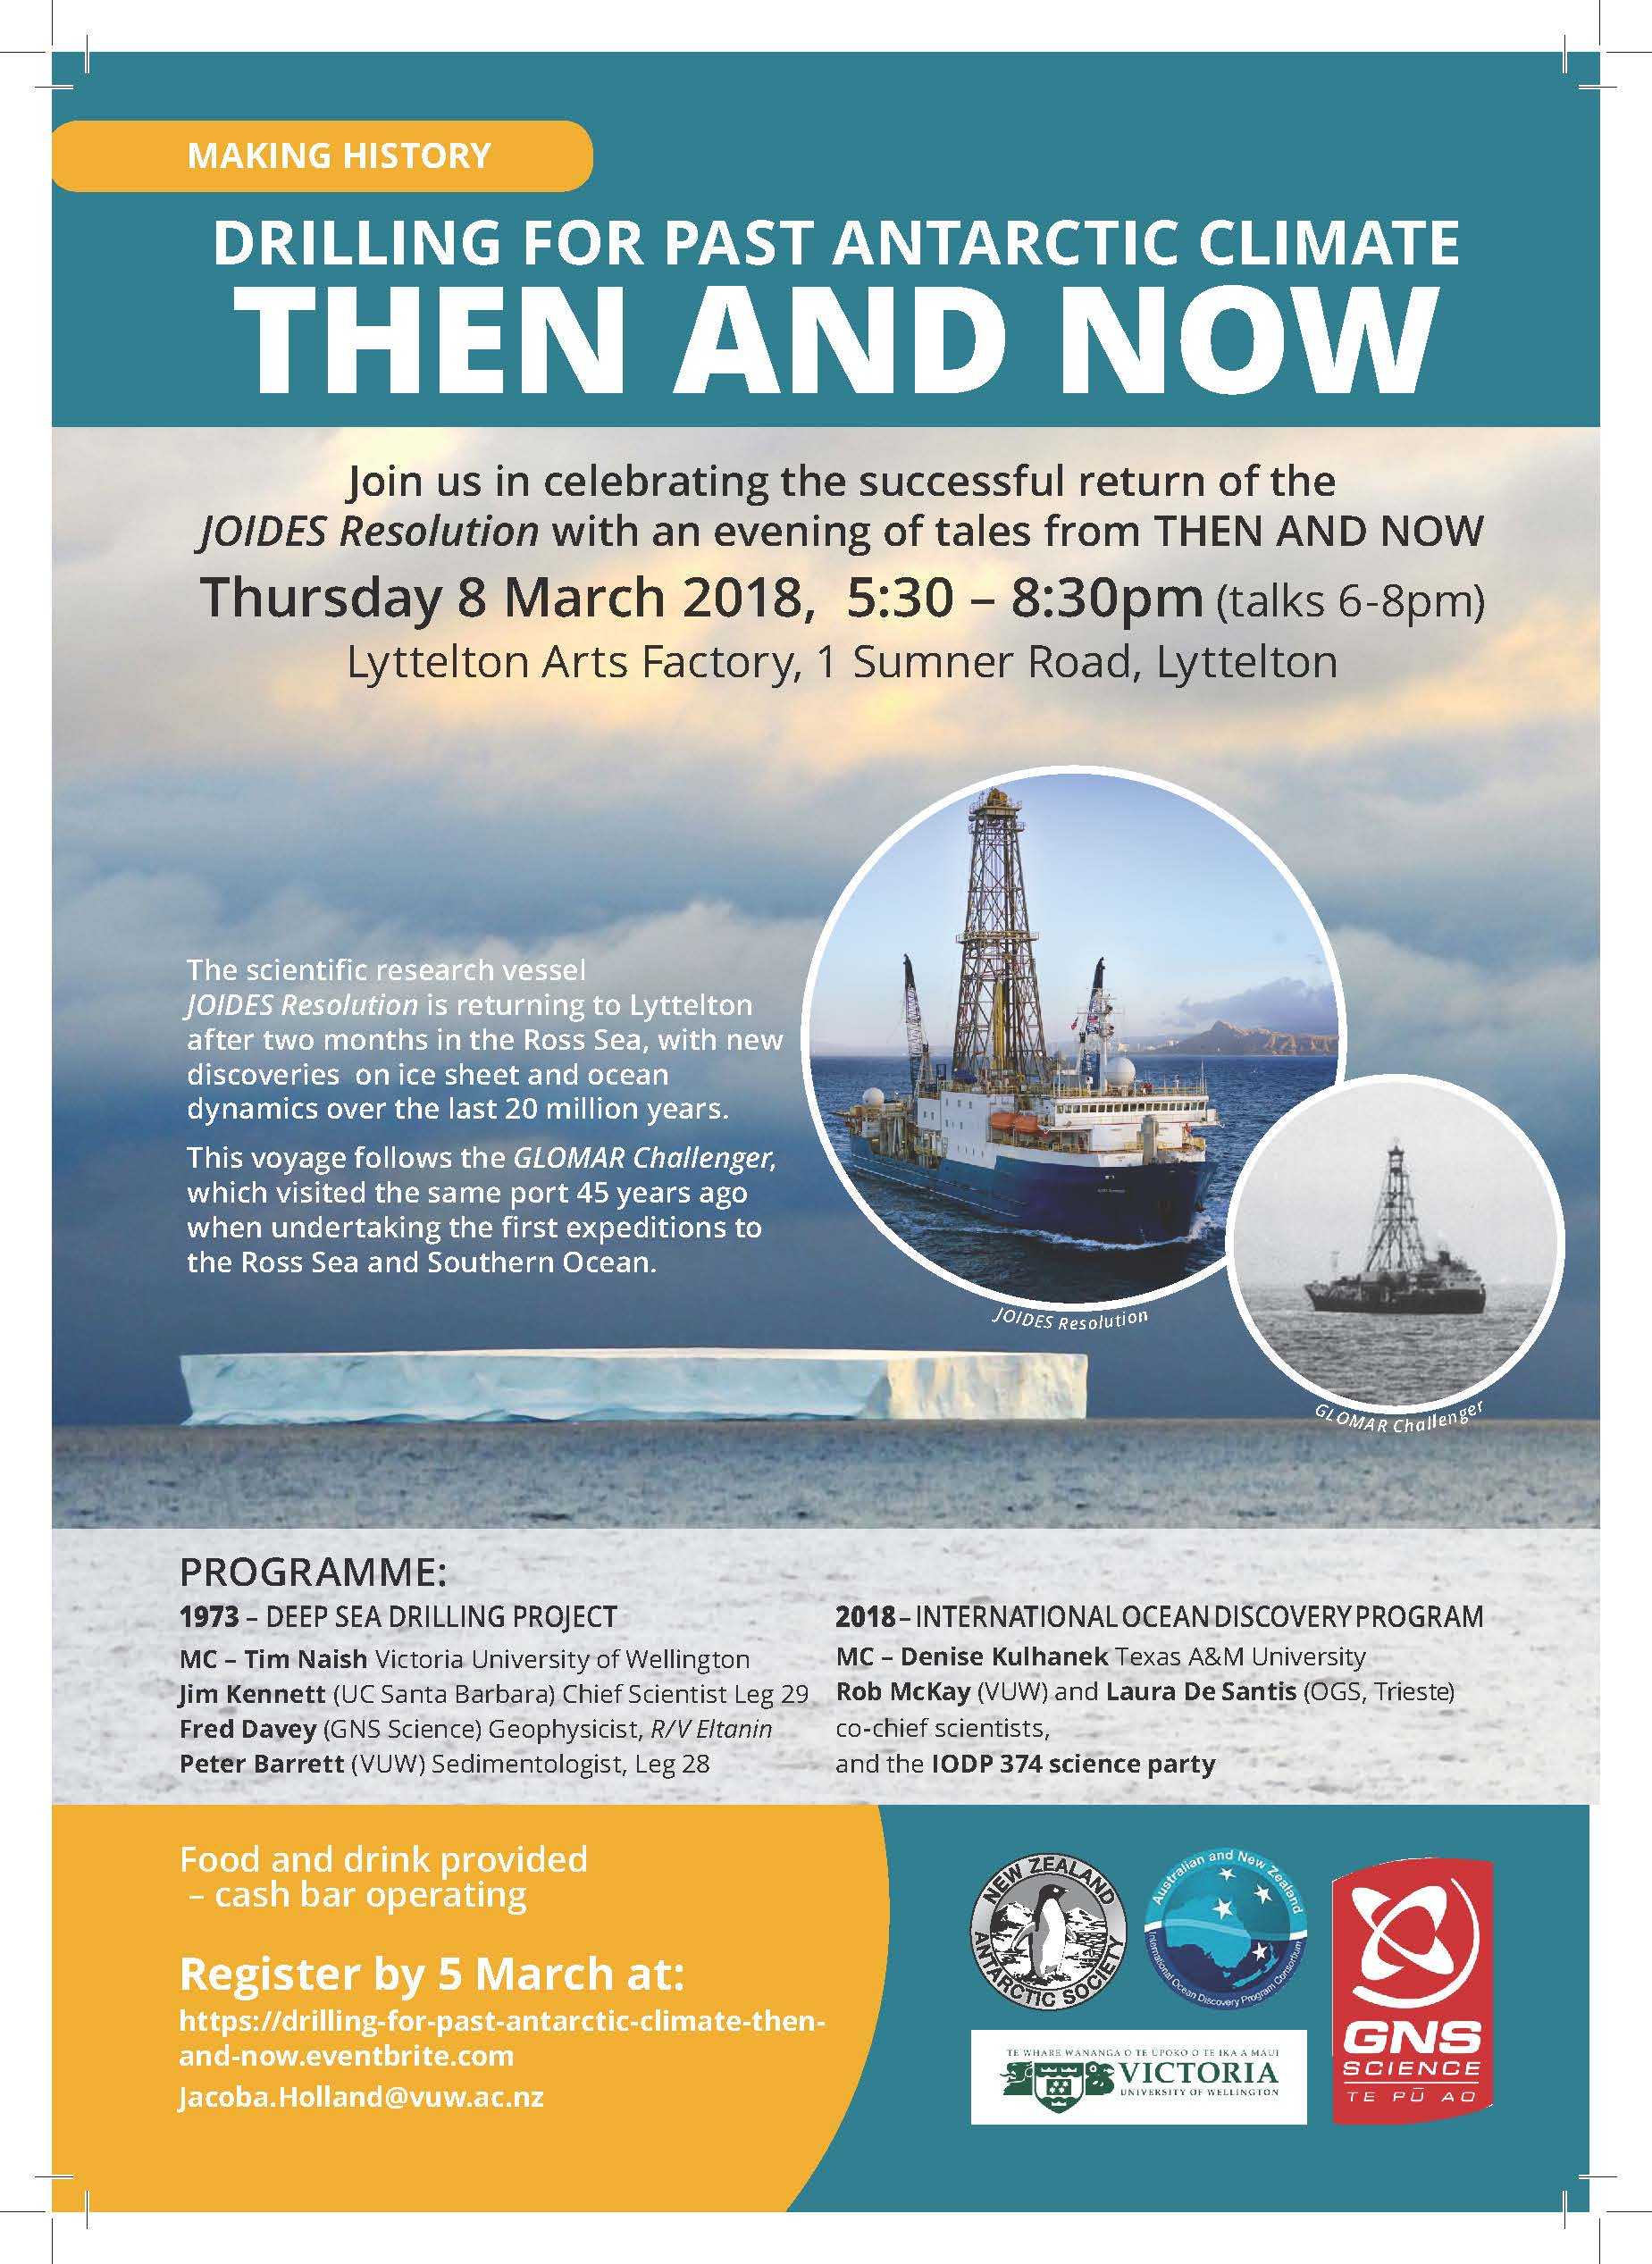 PAIS Climate History Then and Now Chch 2018 03 08